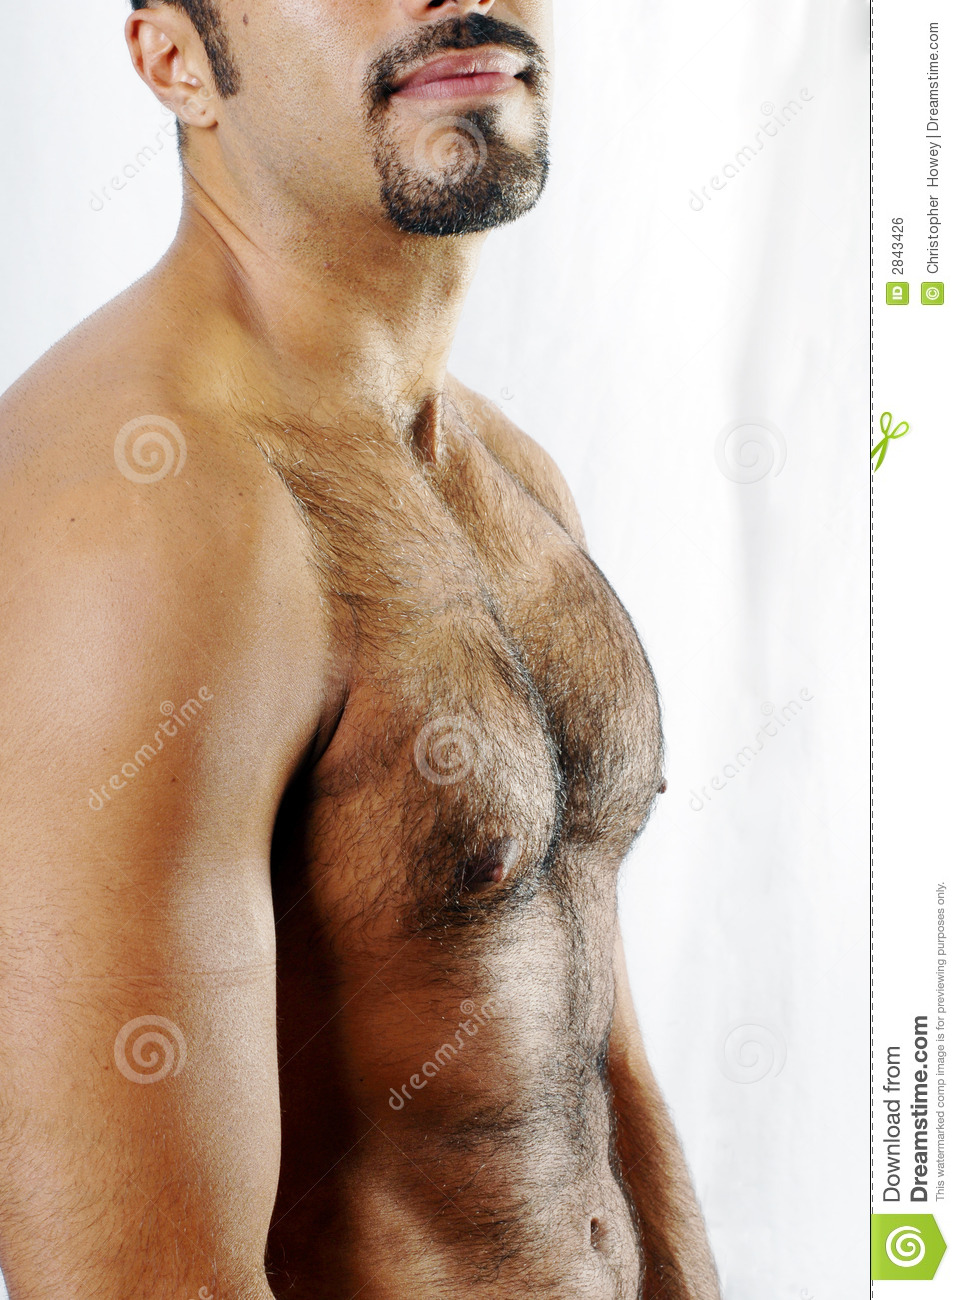 Had strength arms female hairy latino happy